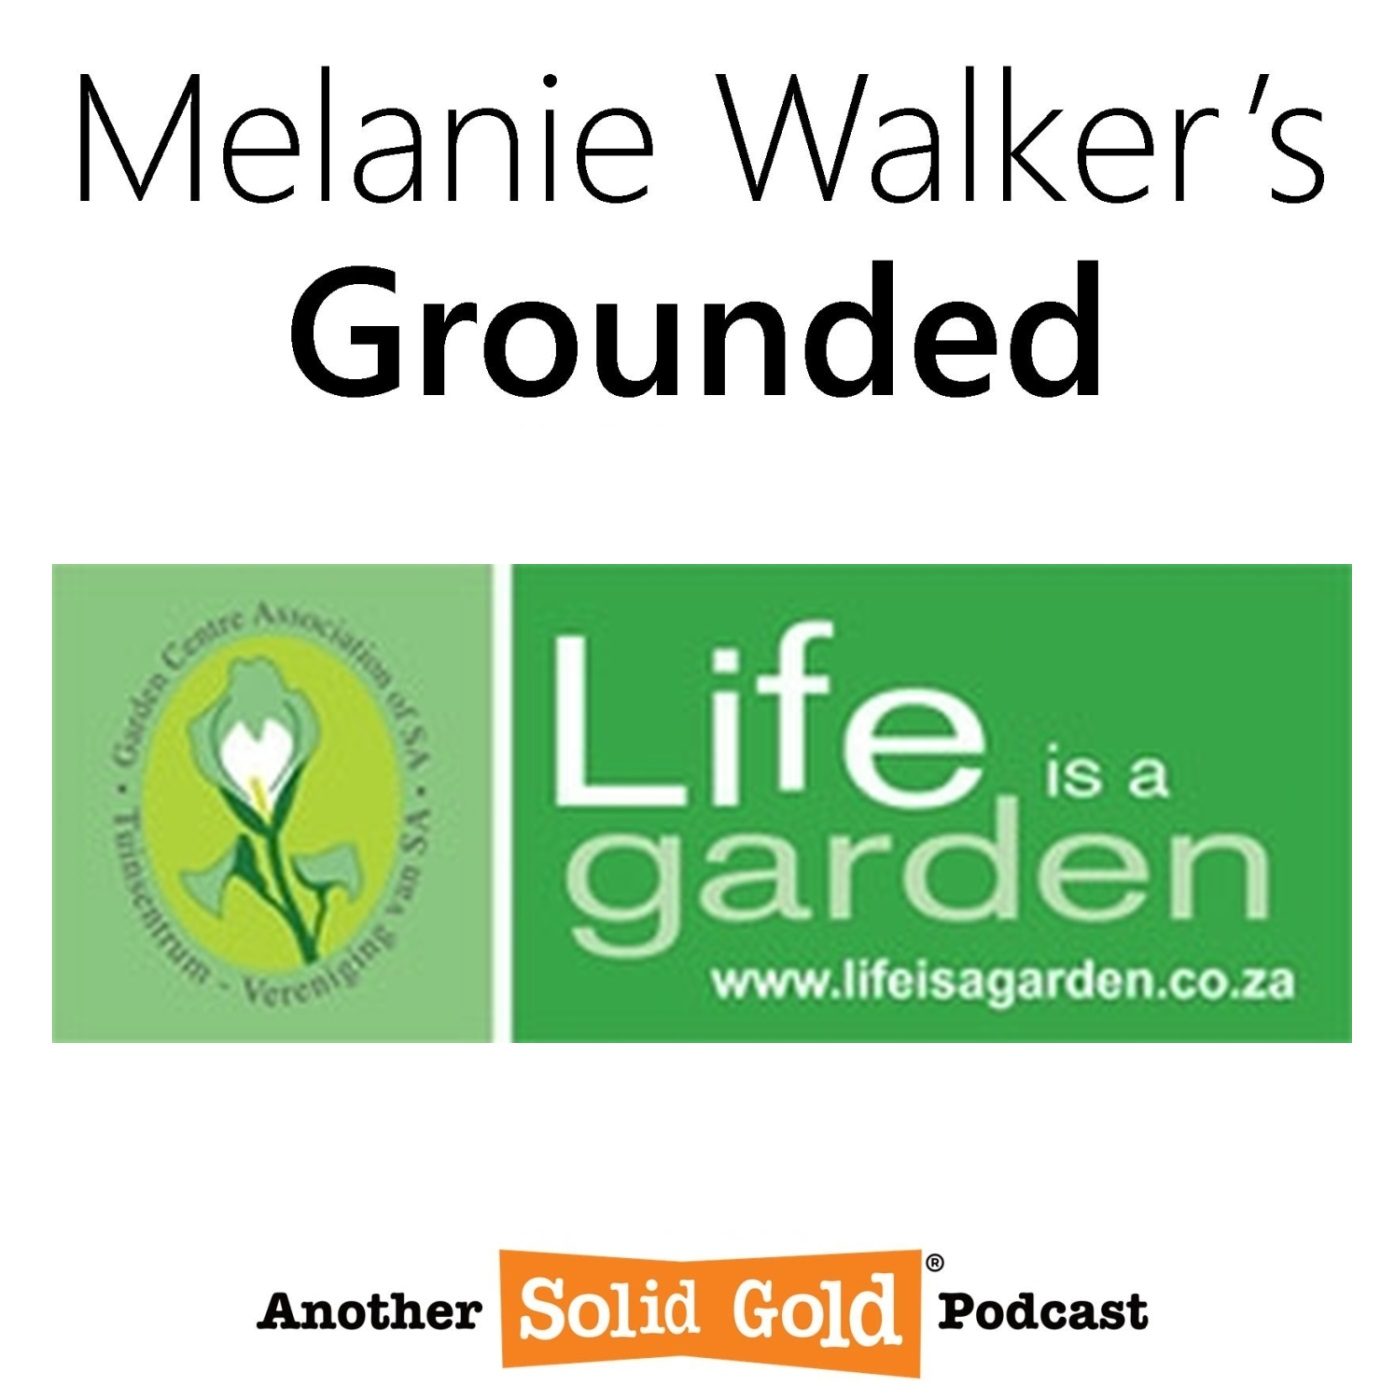 Spring makes a garden | Cary Goodwin (PRO Life is a Garden, marketing specialist Peebles Plants and Colourful Group)